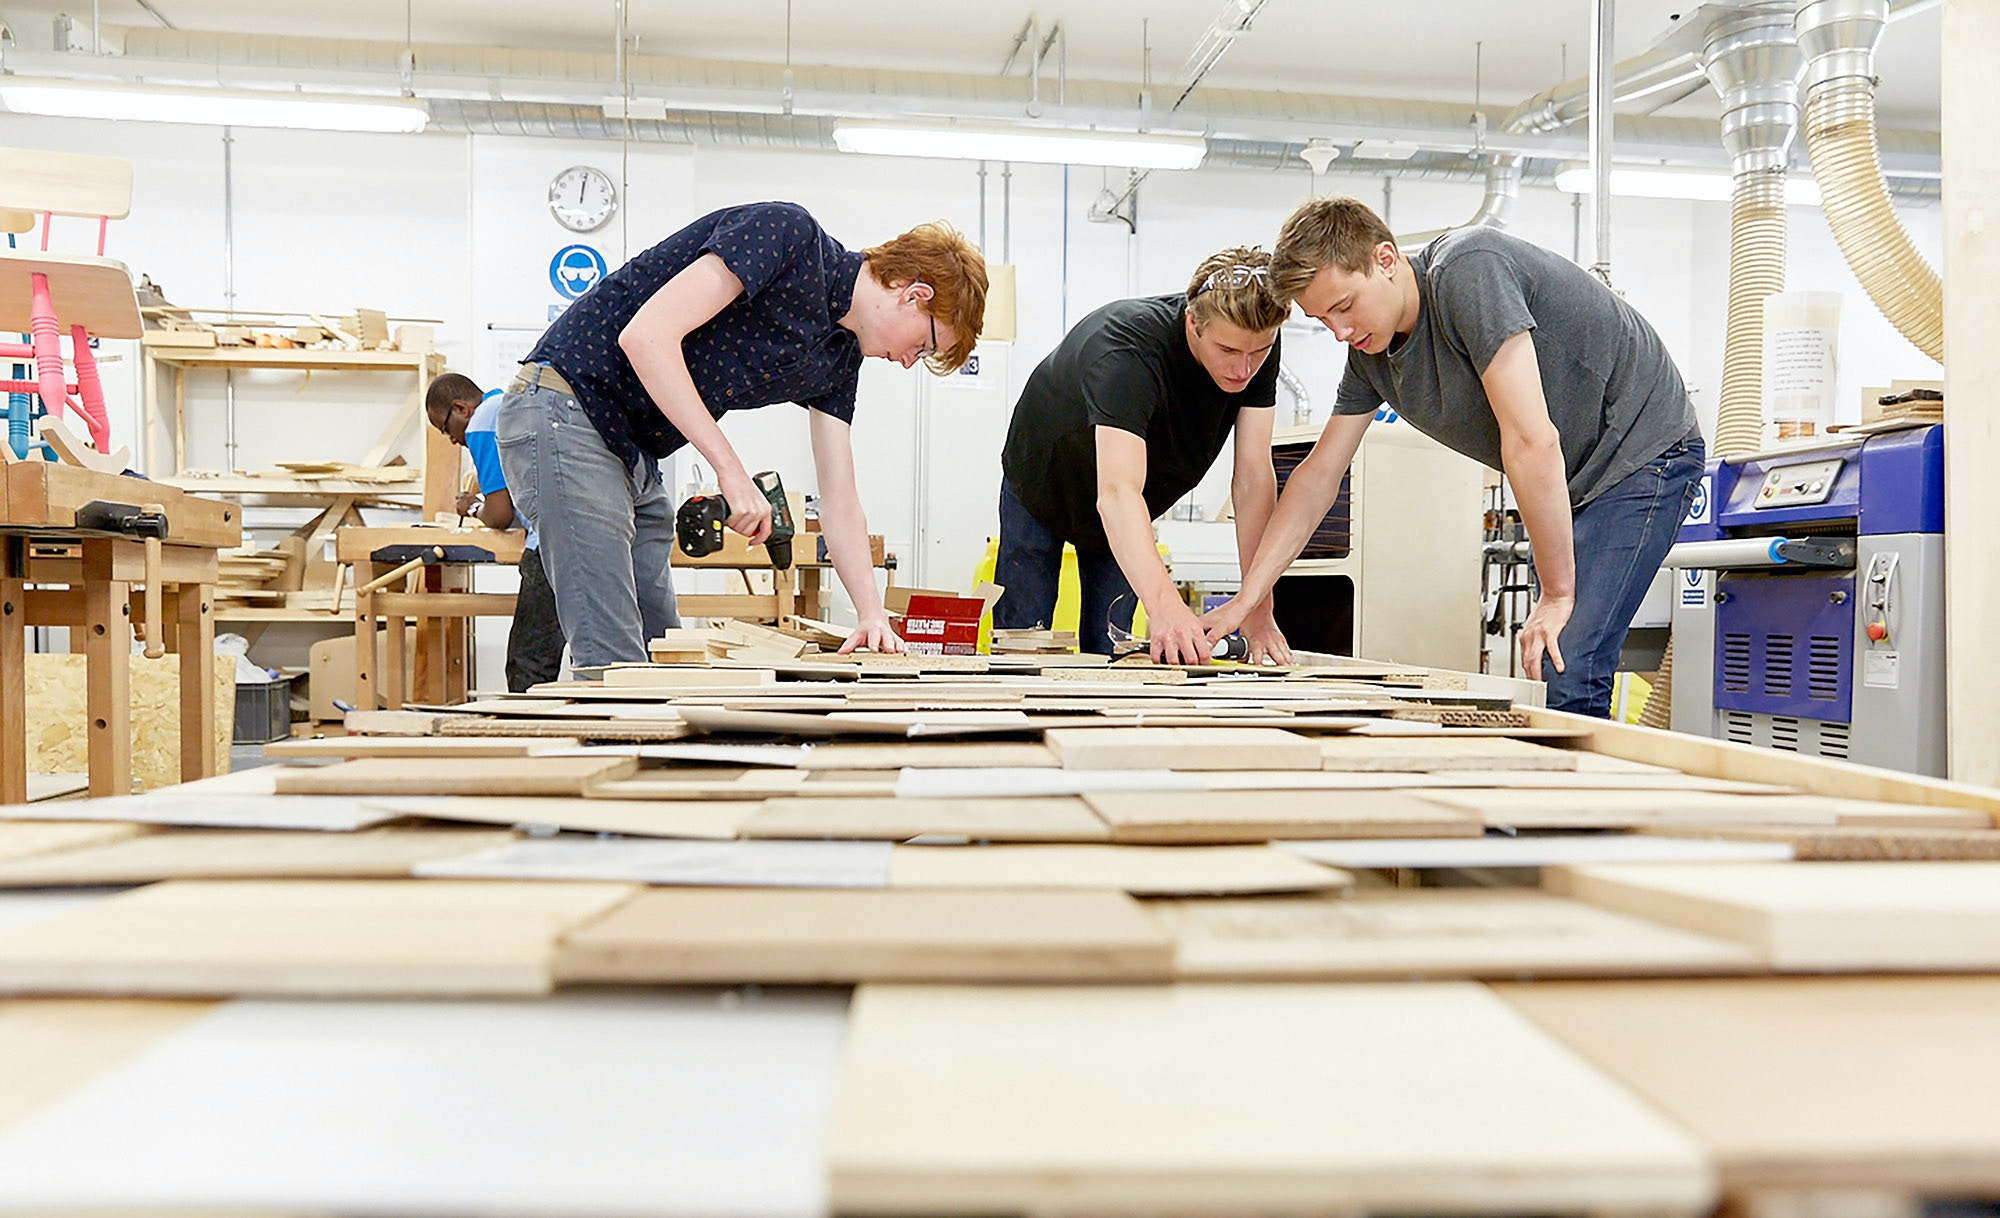 furniture design courses in the uk are becoming increasingly